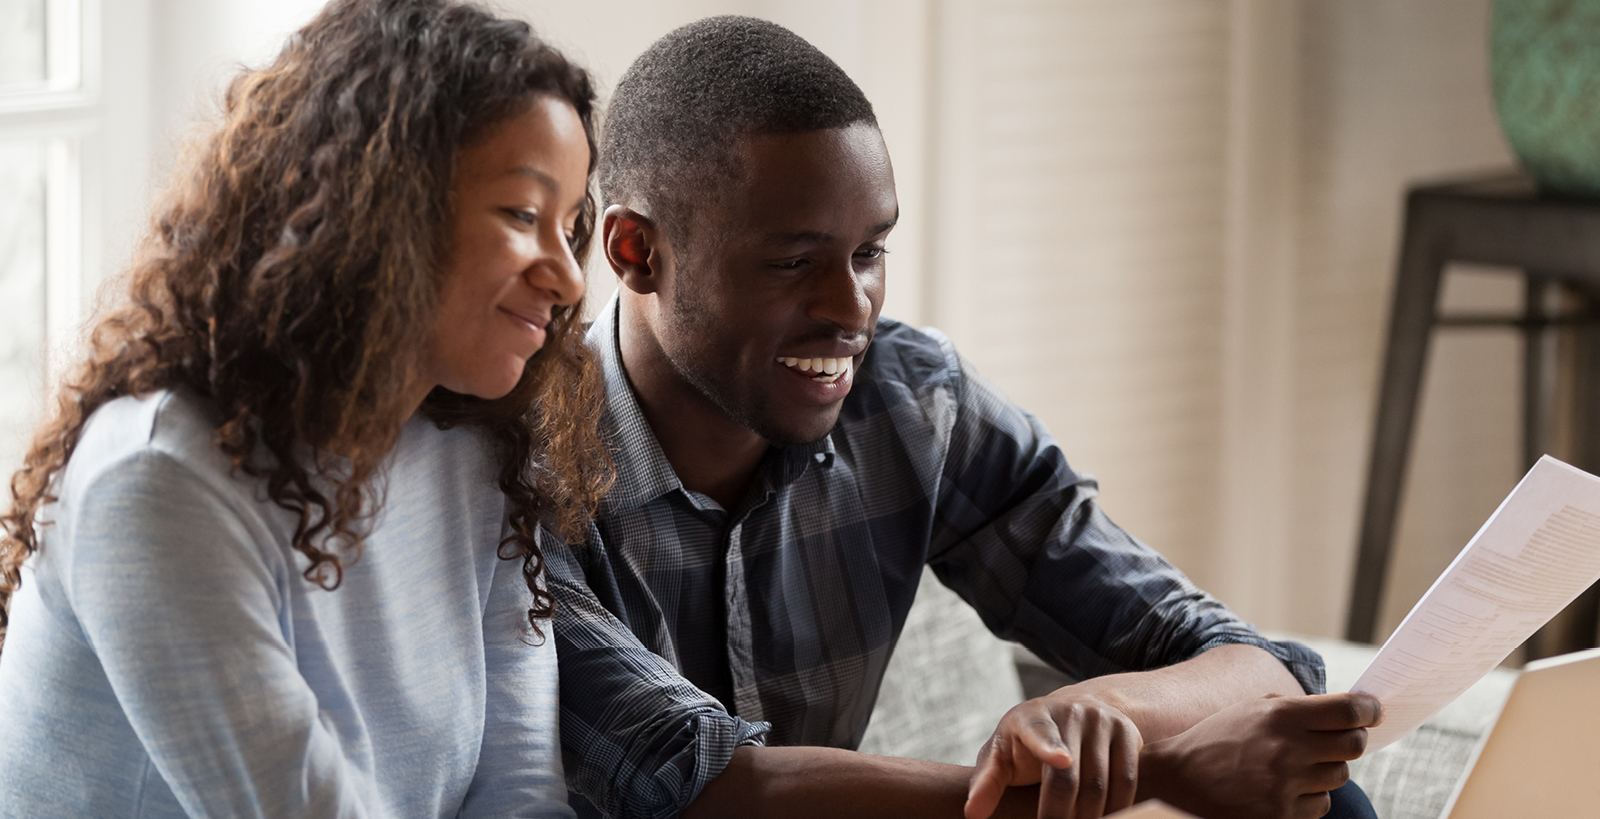 A young couple smiles while reading paperwork